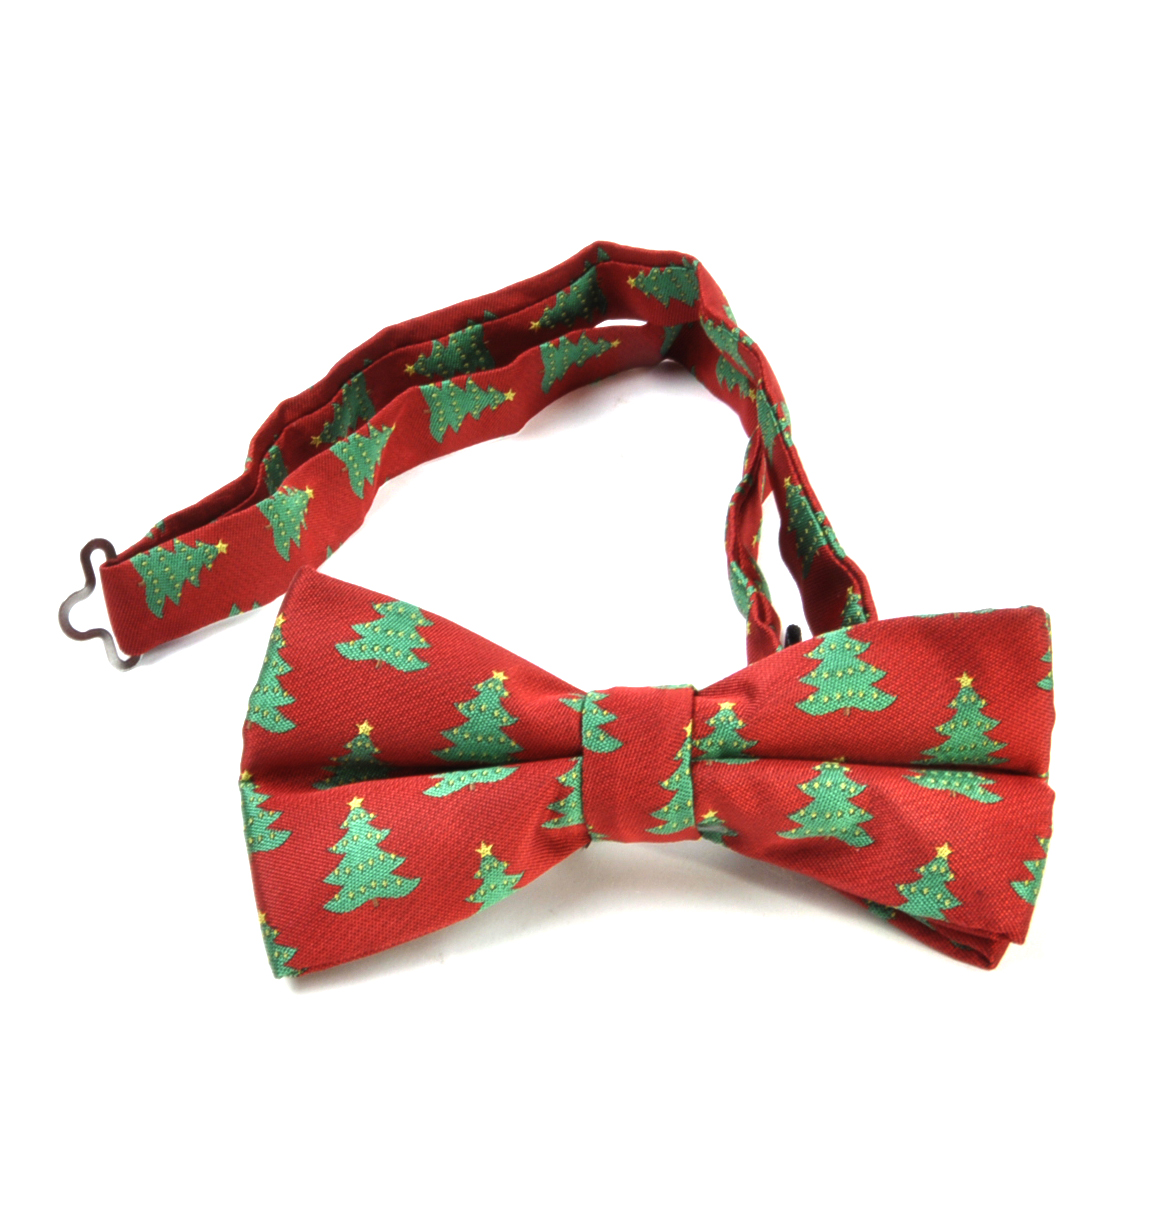 Christmas Tree Bow Tie By St. George Dresswear